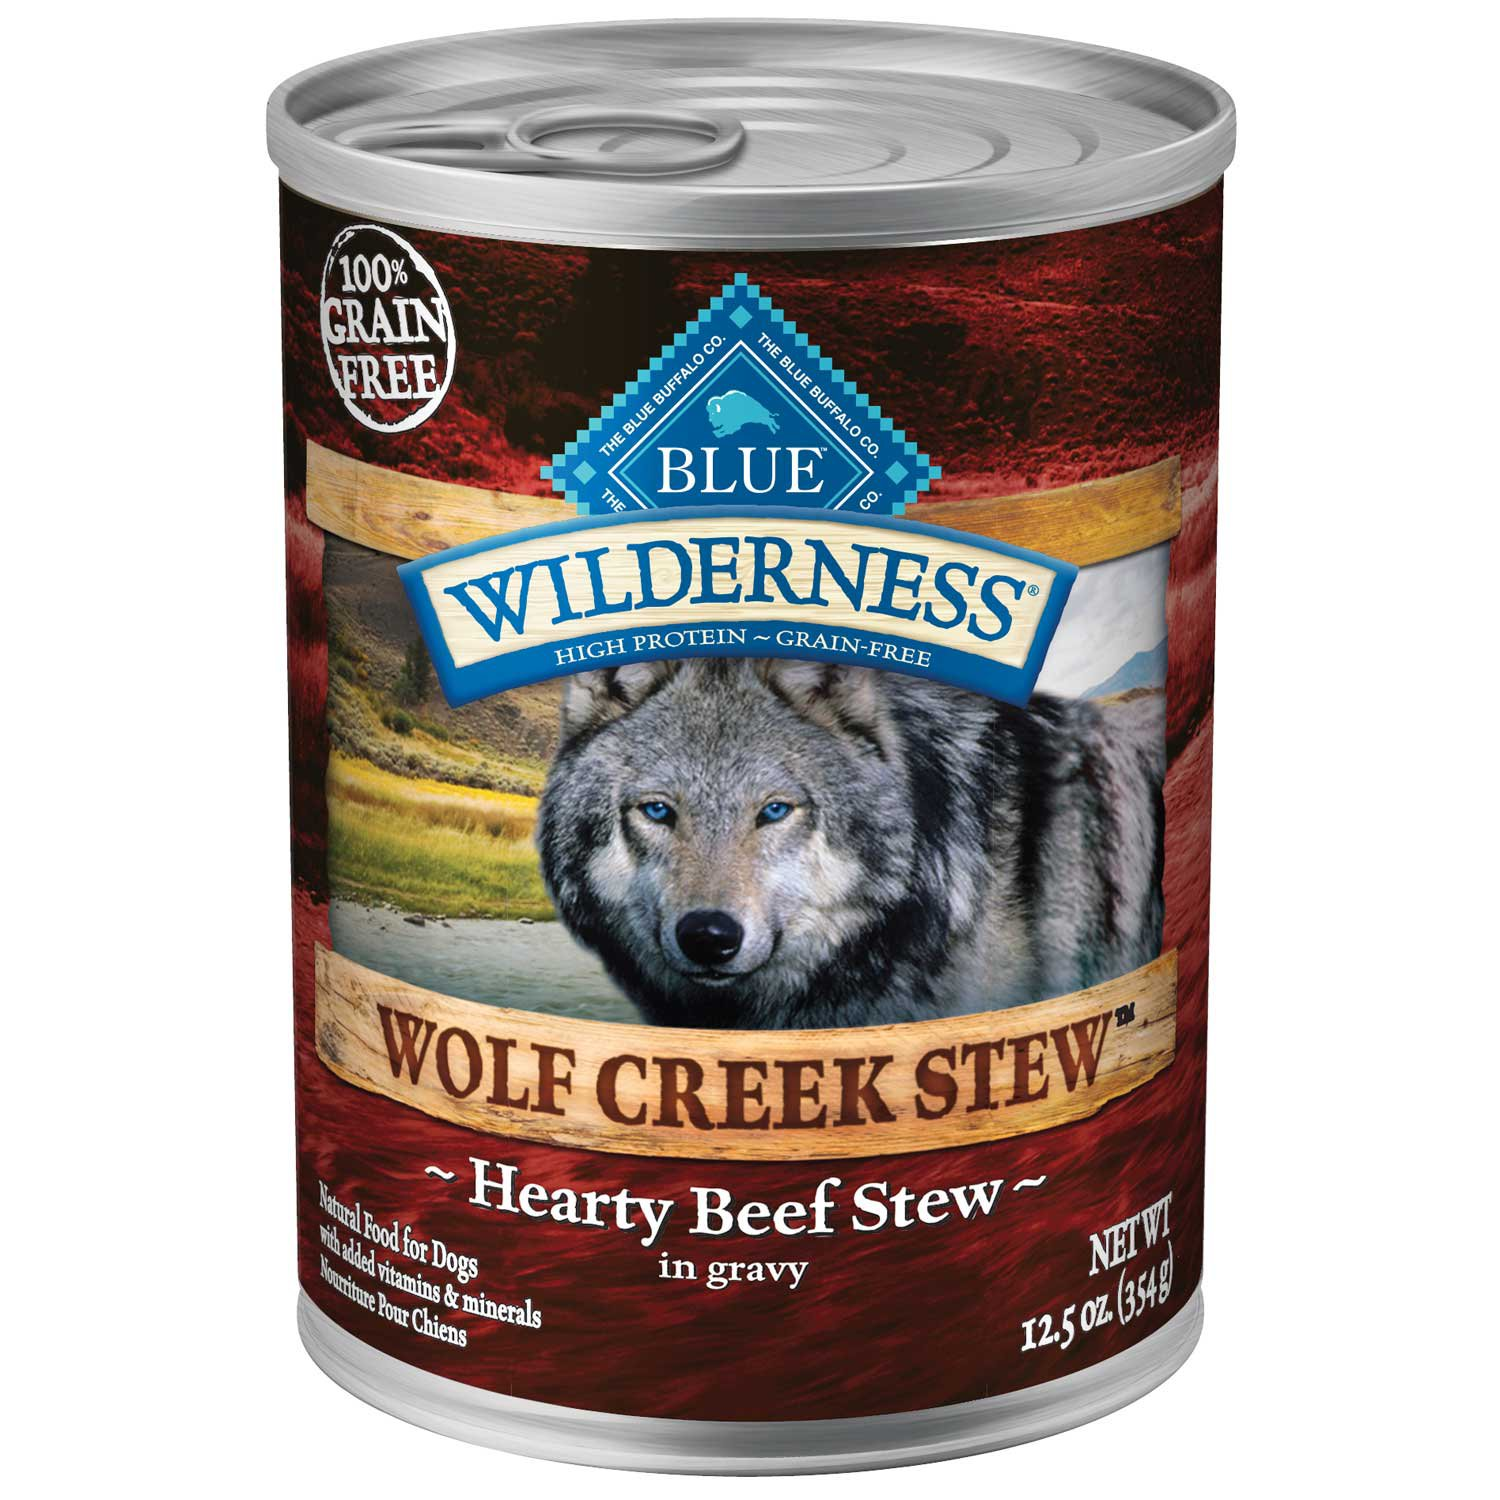 Petco Blue Wilderness Dog Food